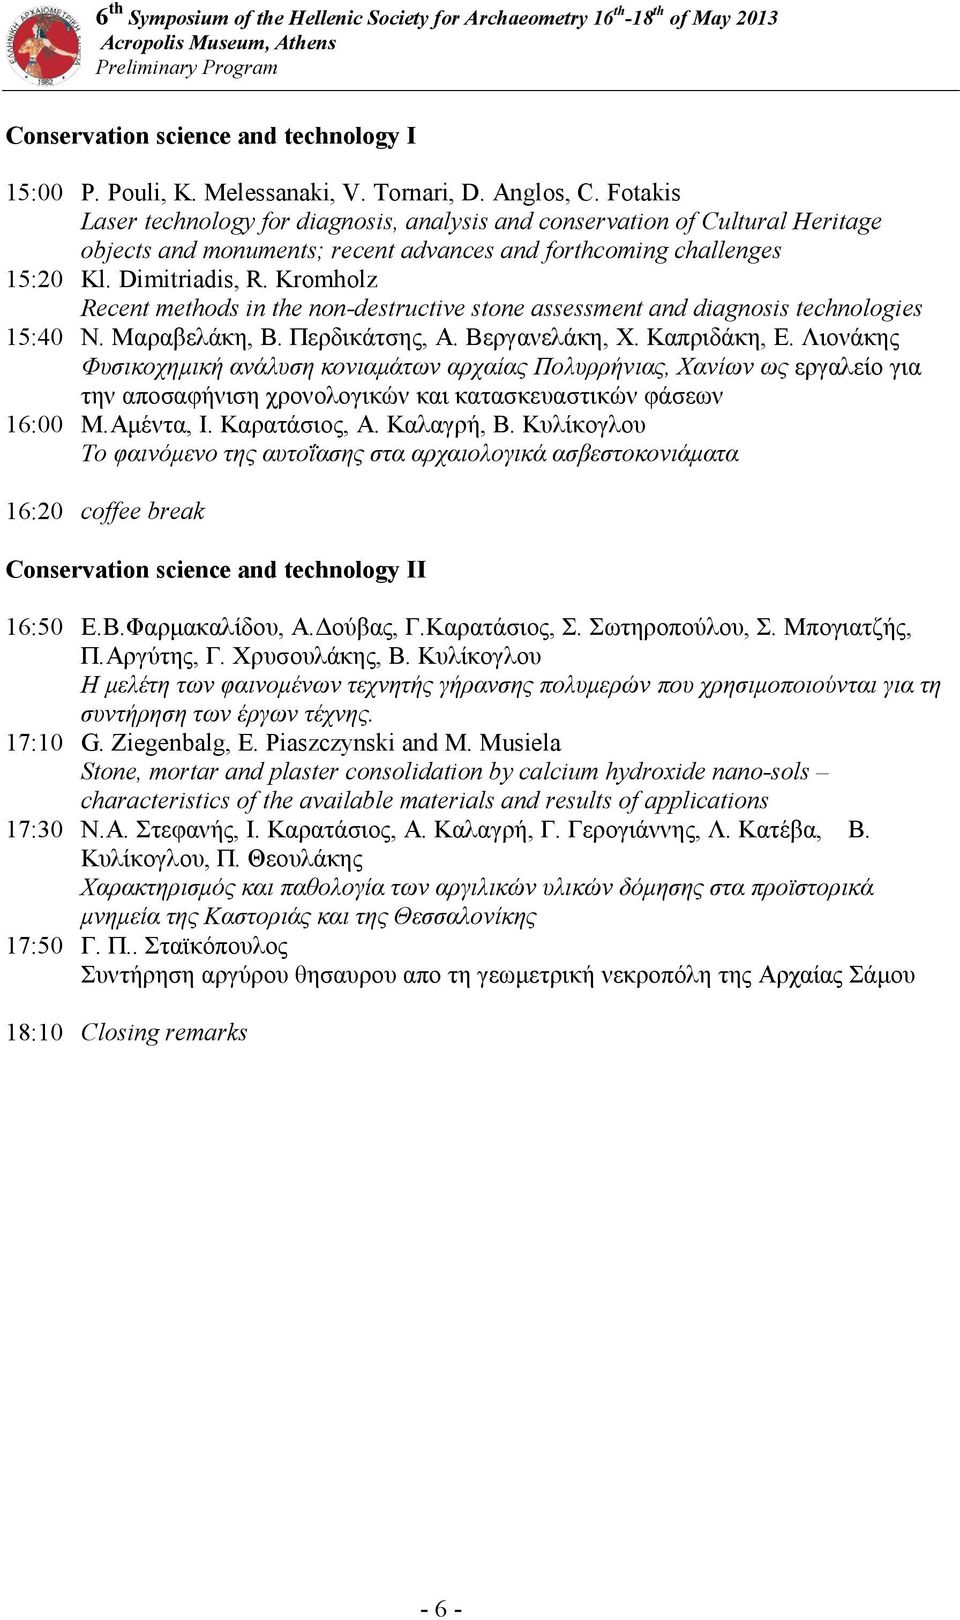 Kromholz Recent methods in the non-destructive stone assessment and diagnosis technologies 15:40 Ν. Μαραβελάκη, Β. Περδικάτσης, Α. Βεργανελάκη, Χ. Καπριδάκη, Ε.